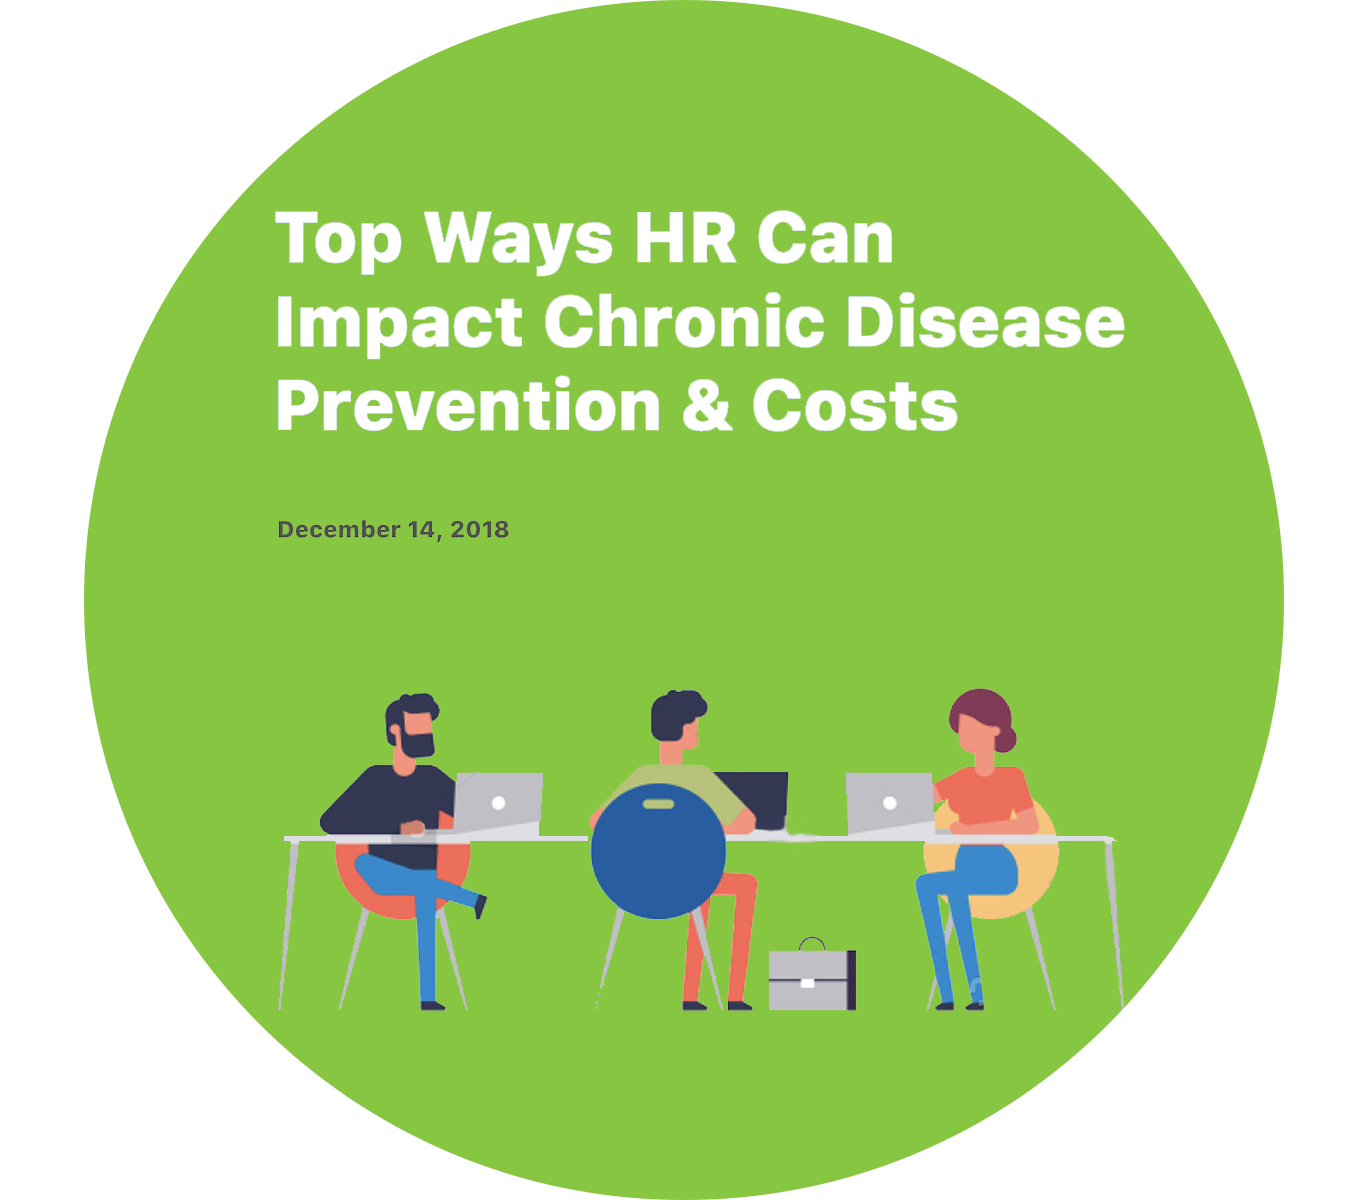 Top Ways HR can impact chronic disease prevention and costs